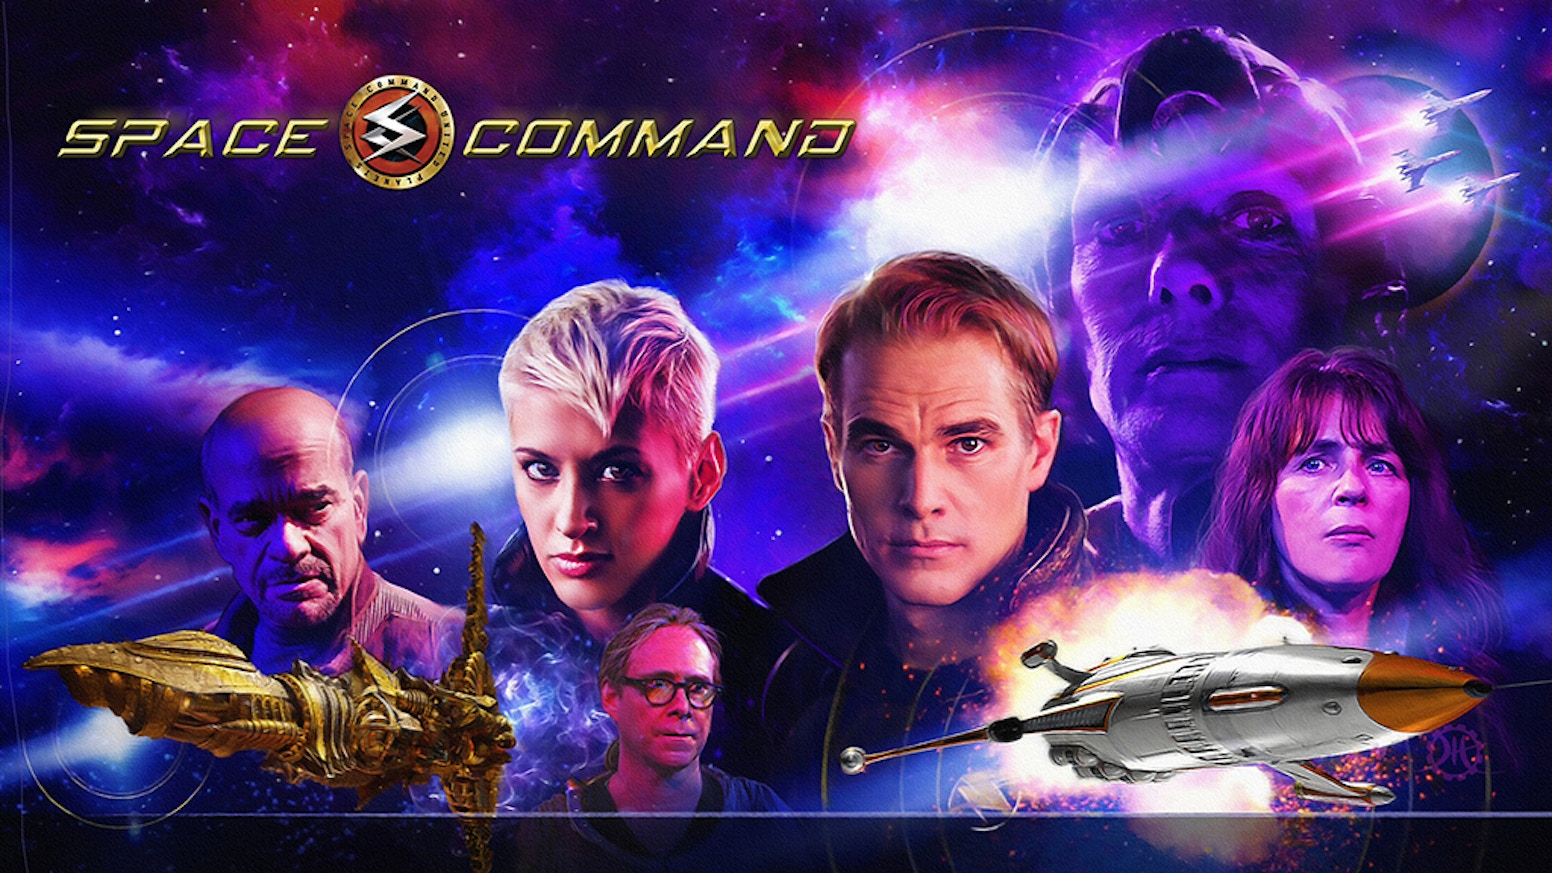 SPACE COMMAND is a bold, new sci-fi adventure, starring sci-fi legends. It has a retro feel and an optimistic view of the future.